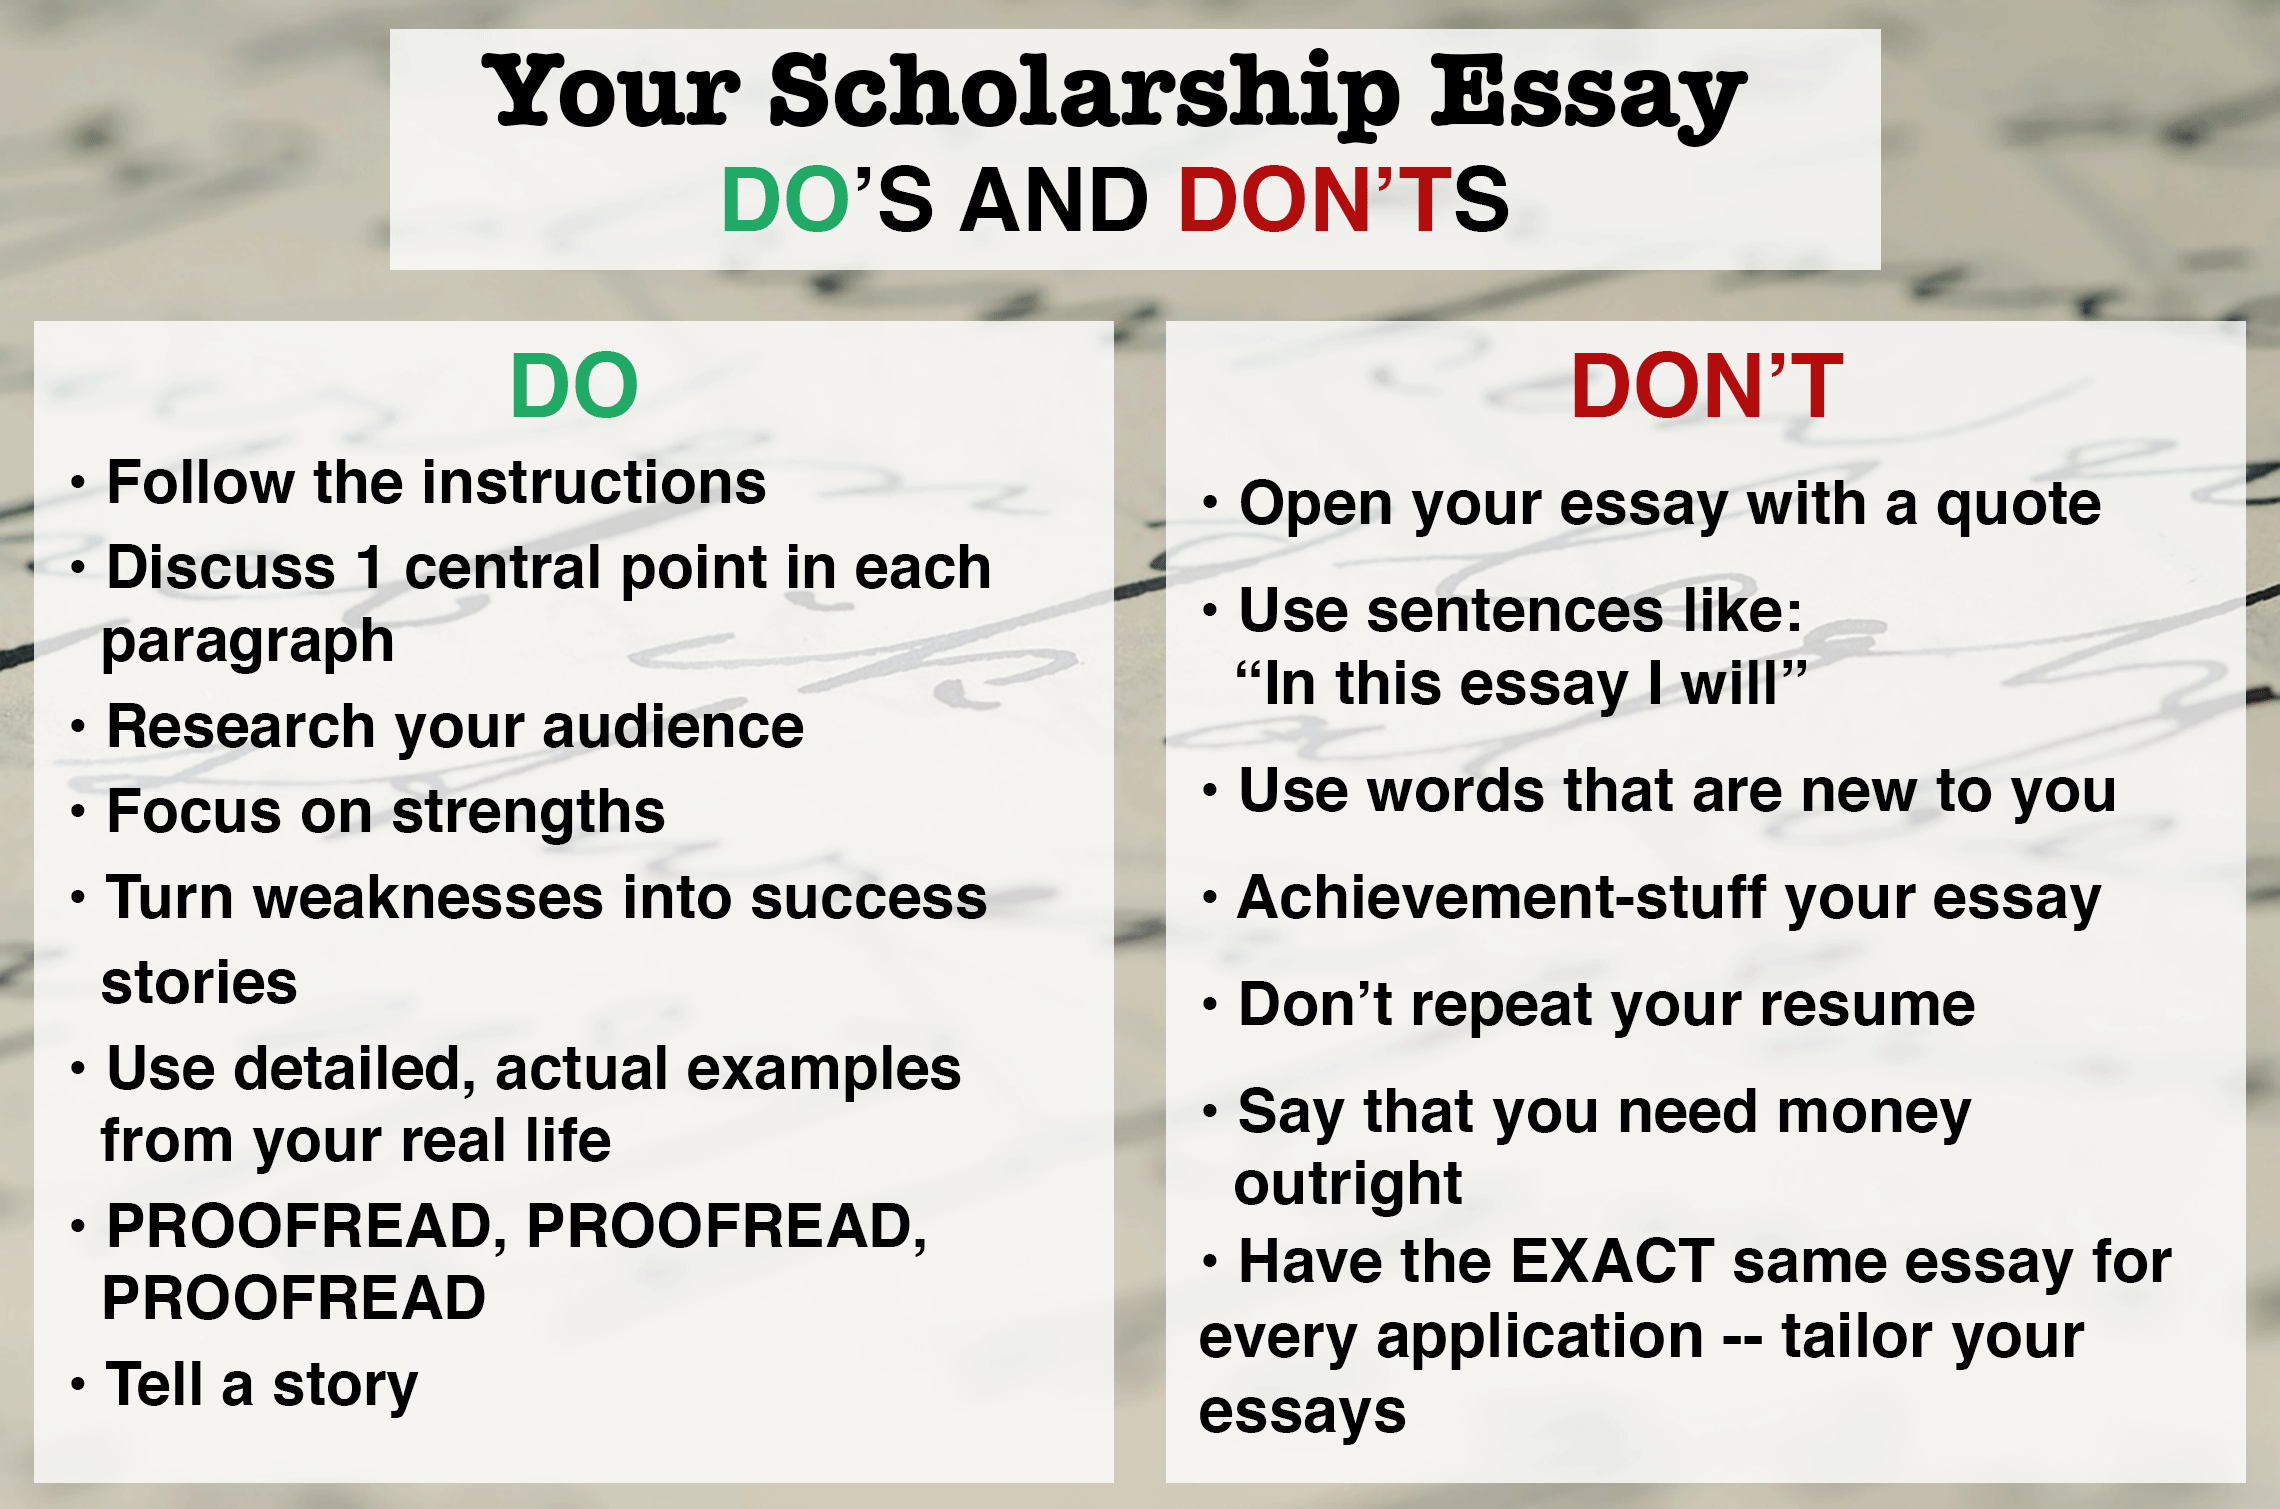 How to Write a Winning Scholarship Essay in 10 Steps